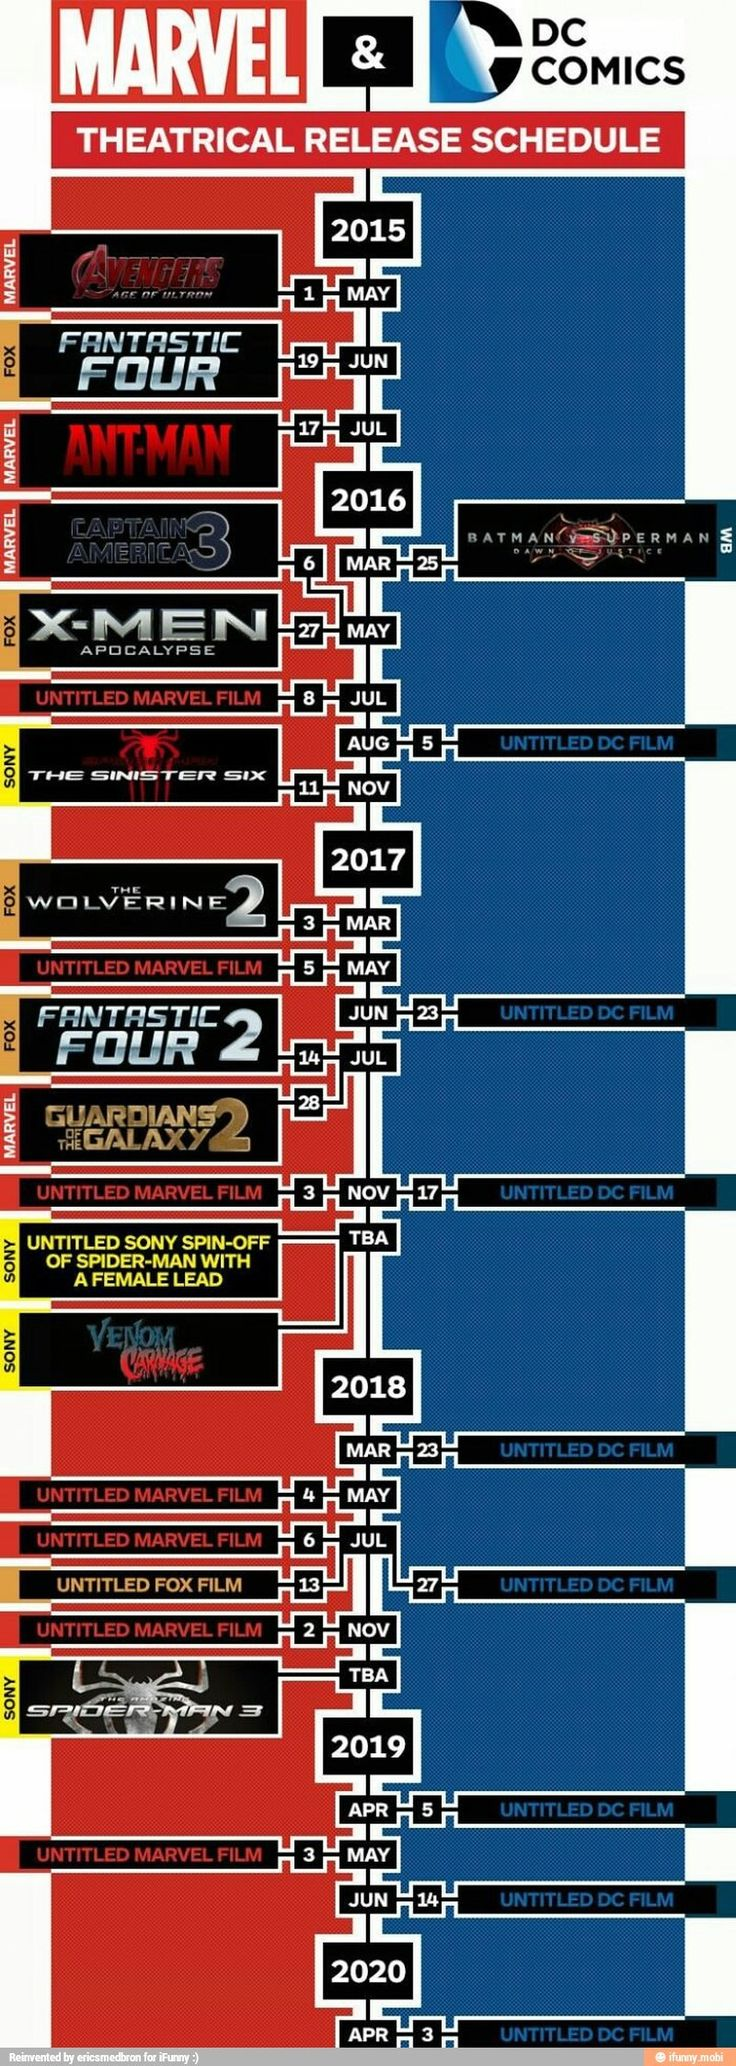 The Marvel/DC Movie Timeline Helps Plan Your Next 7 Years Of Superhero Movies - MTV